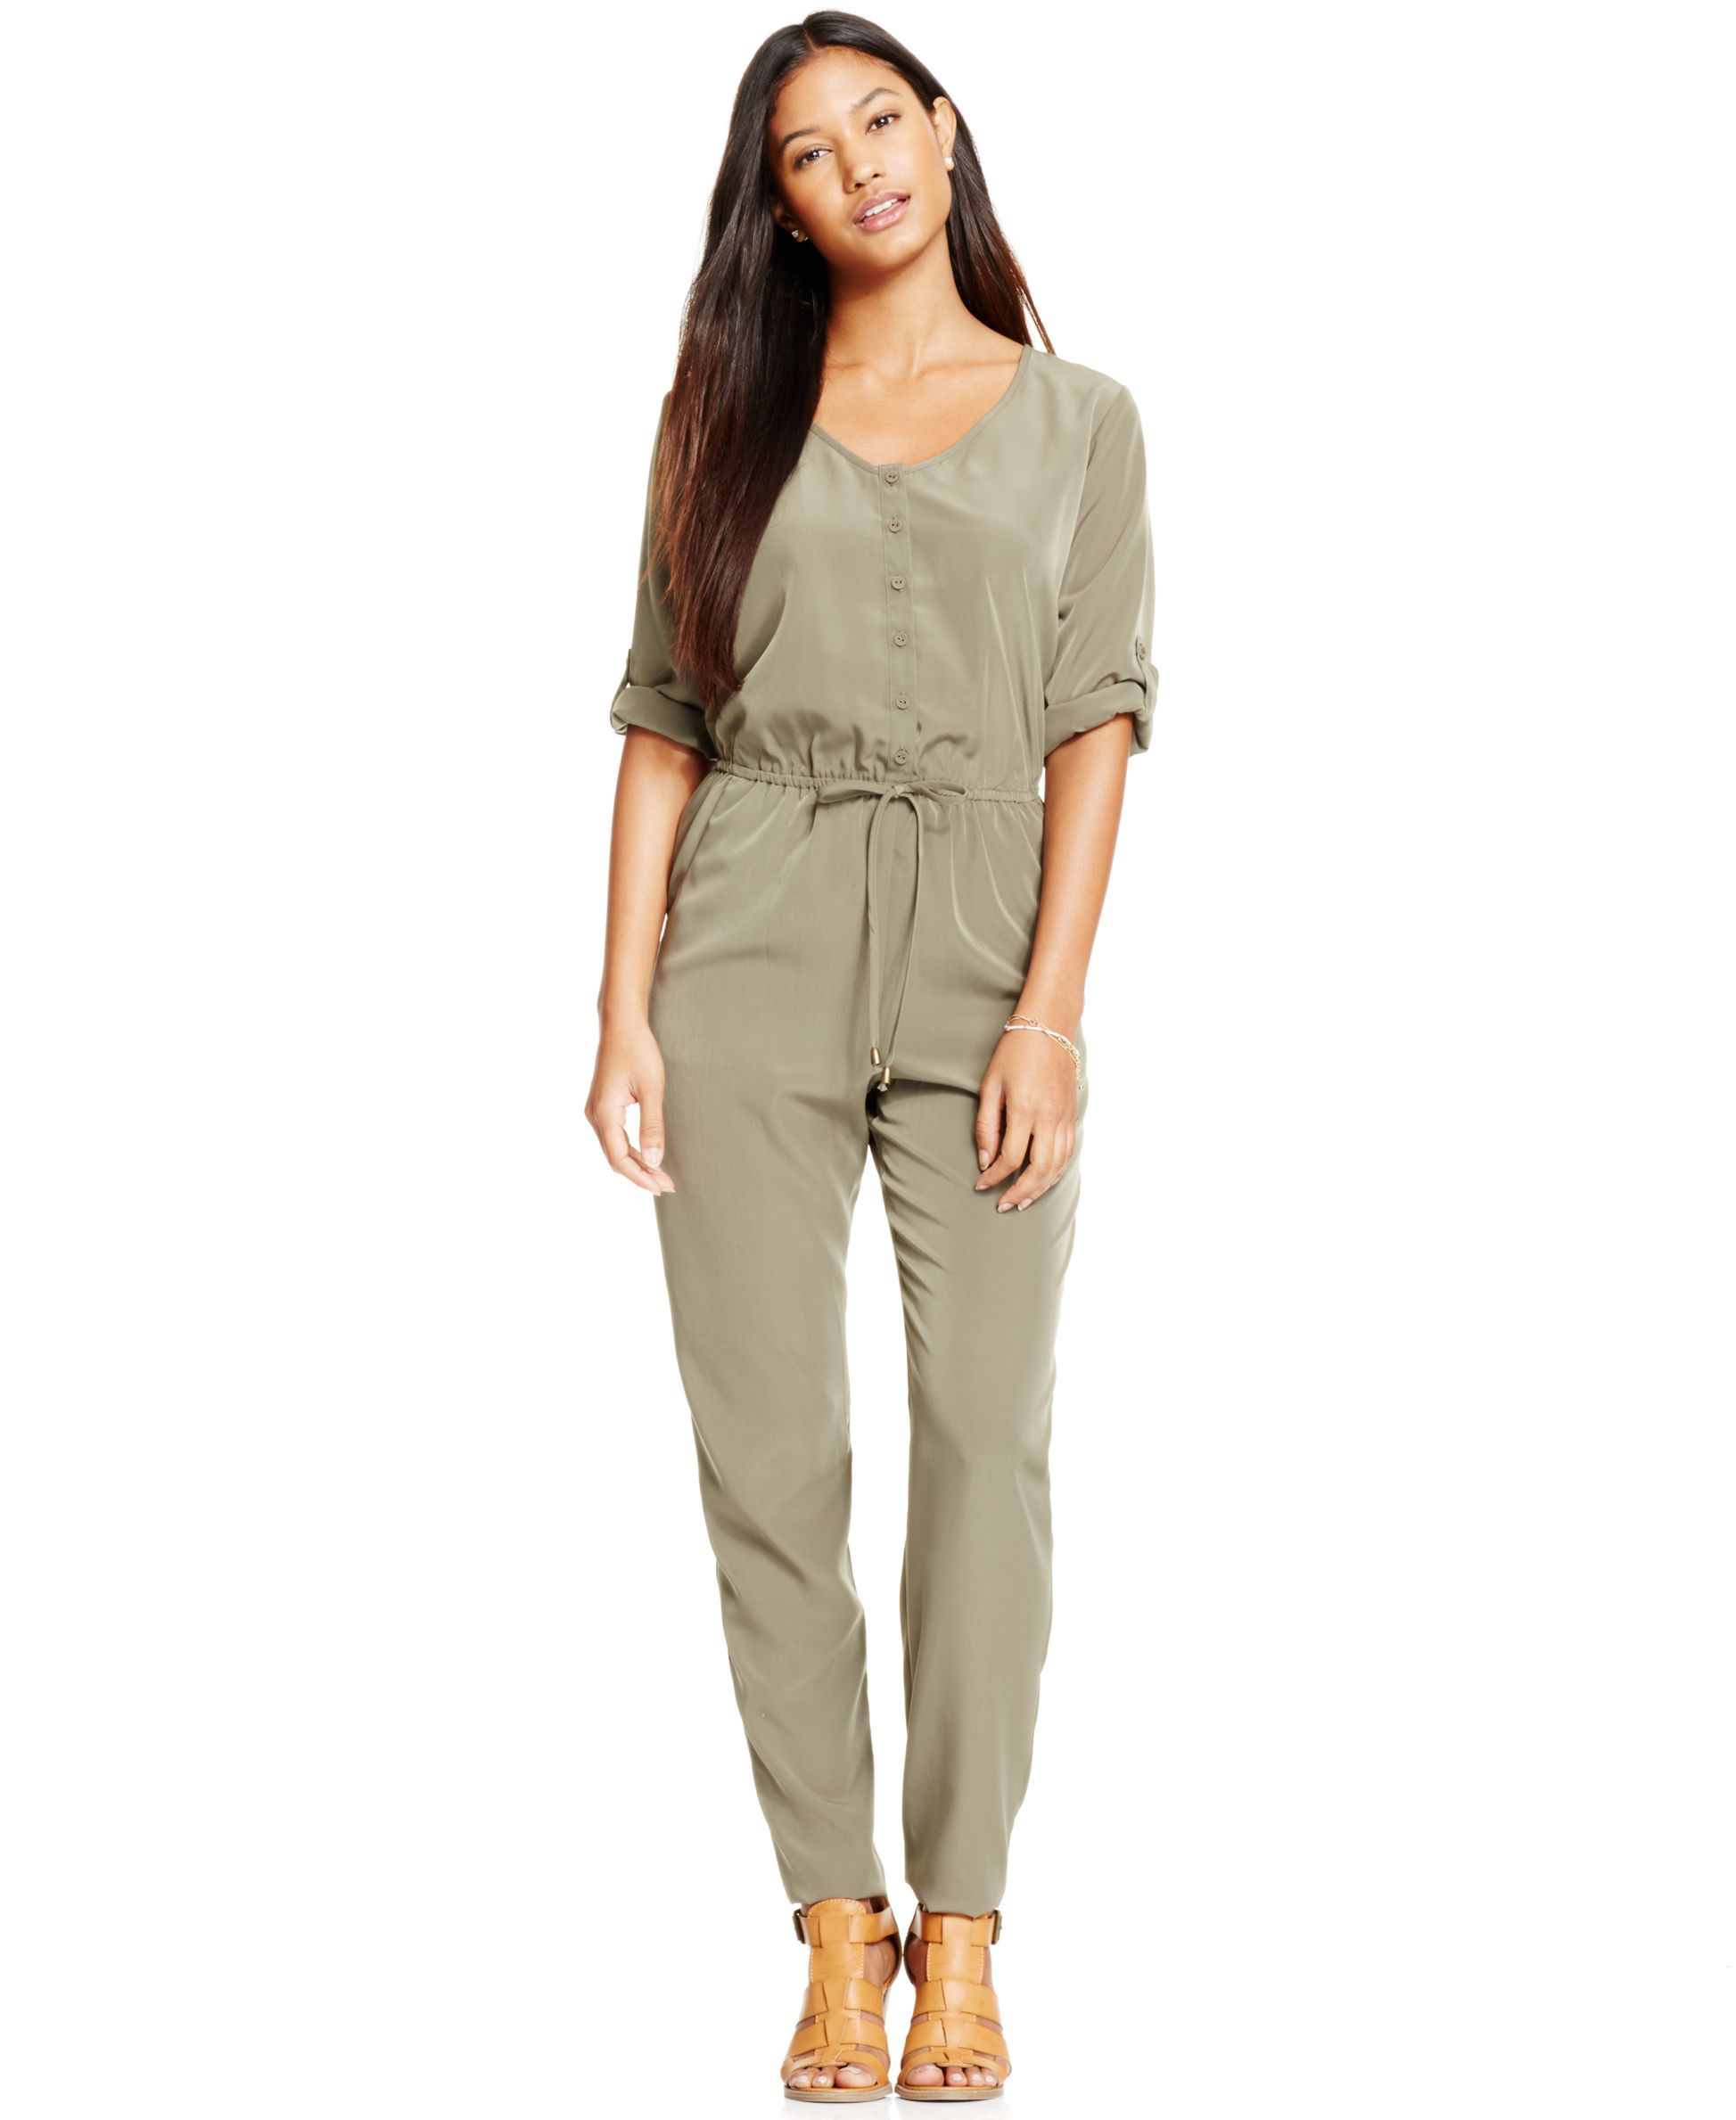 f4be3b31926 Pants Jumpsuits For Juniors - Gomes Weine AG